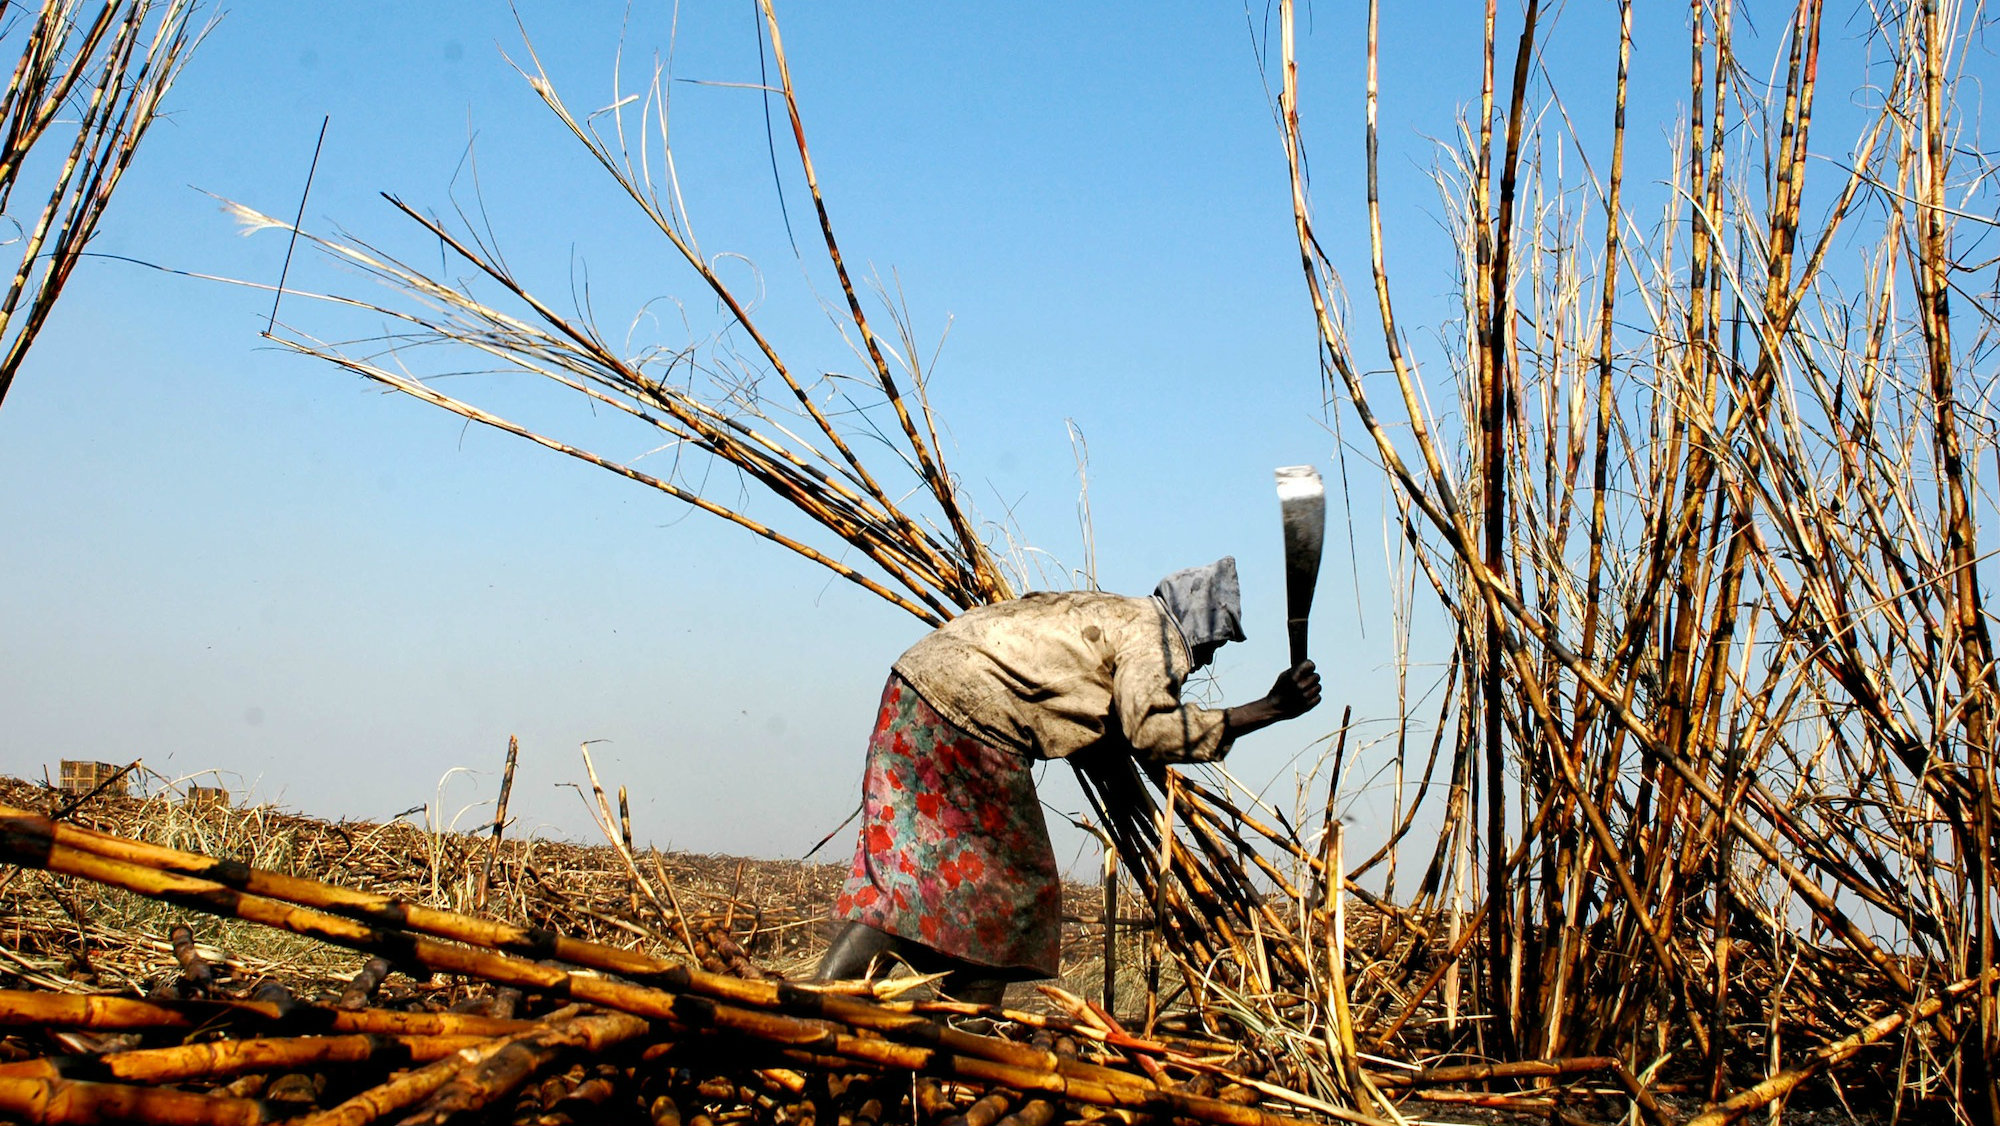 A Mozambiquan sugar worker harvests crops near the capital Maputo.